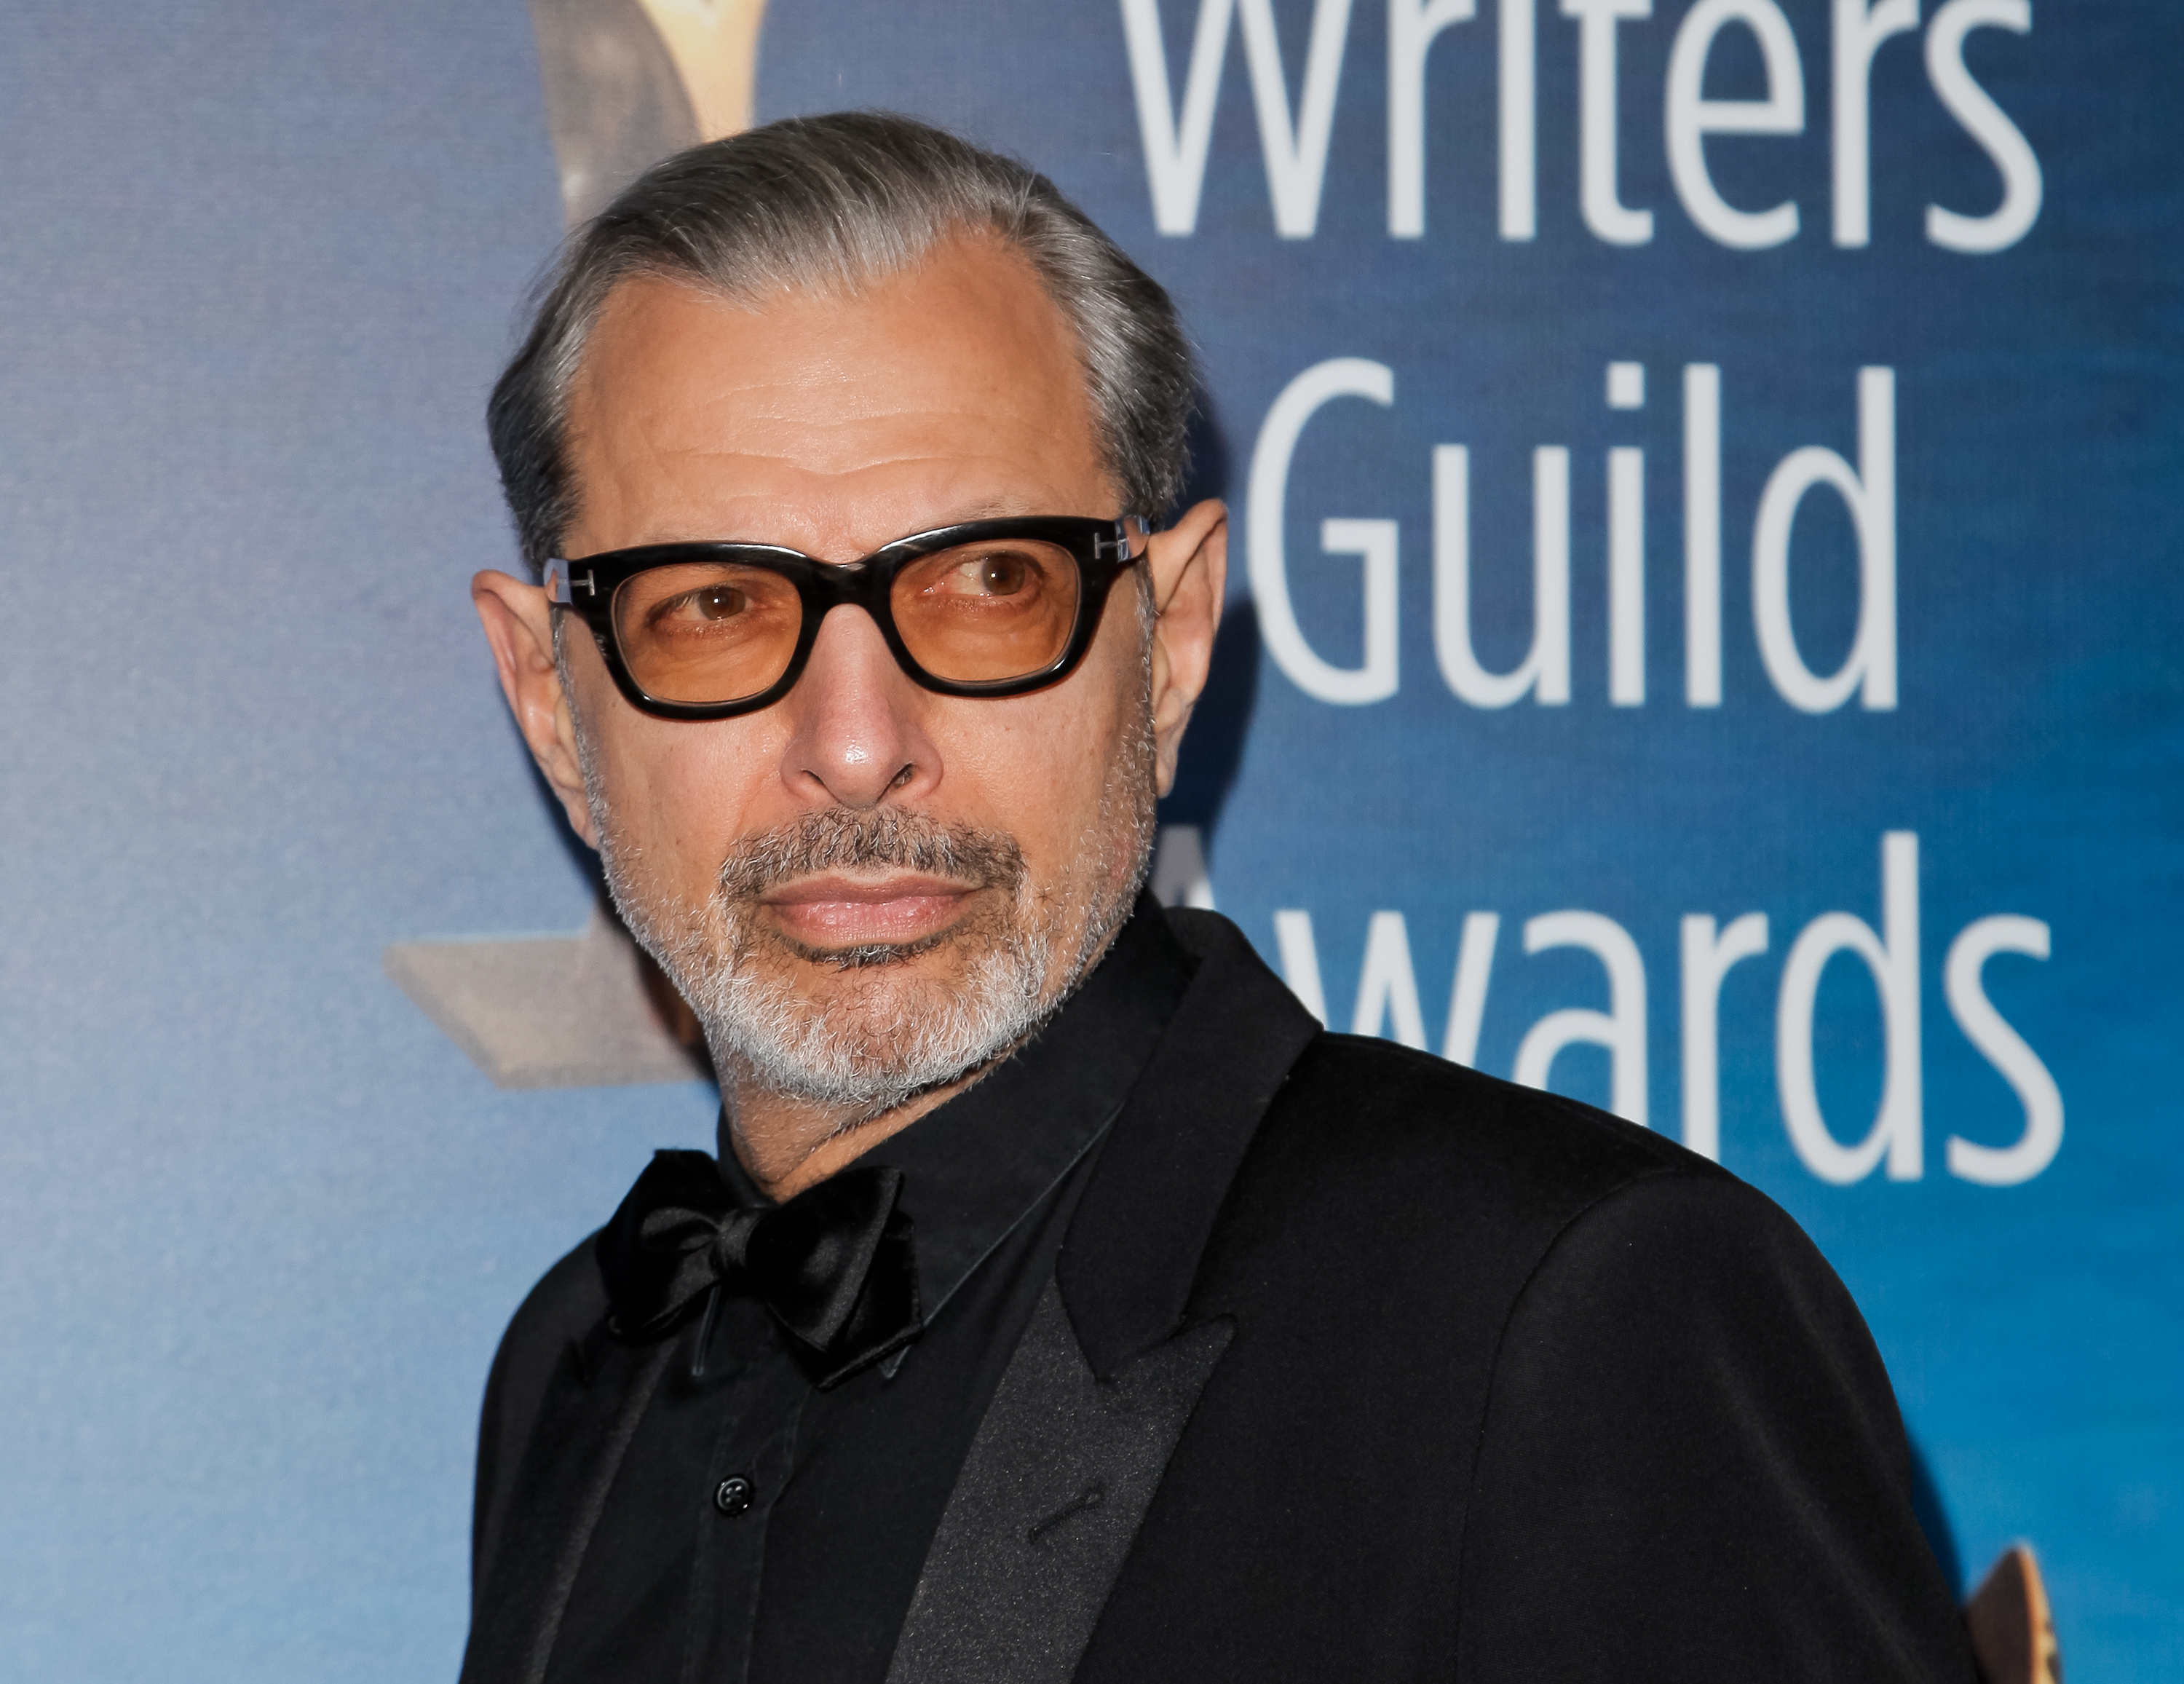 Jeff Goldblum attends the 2017 Writers Guild Awards L.A. Ceremony on Feb. 19, 2017 in Beverly Hills, California.